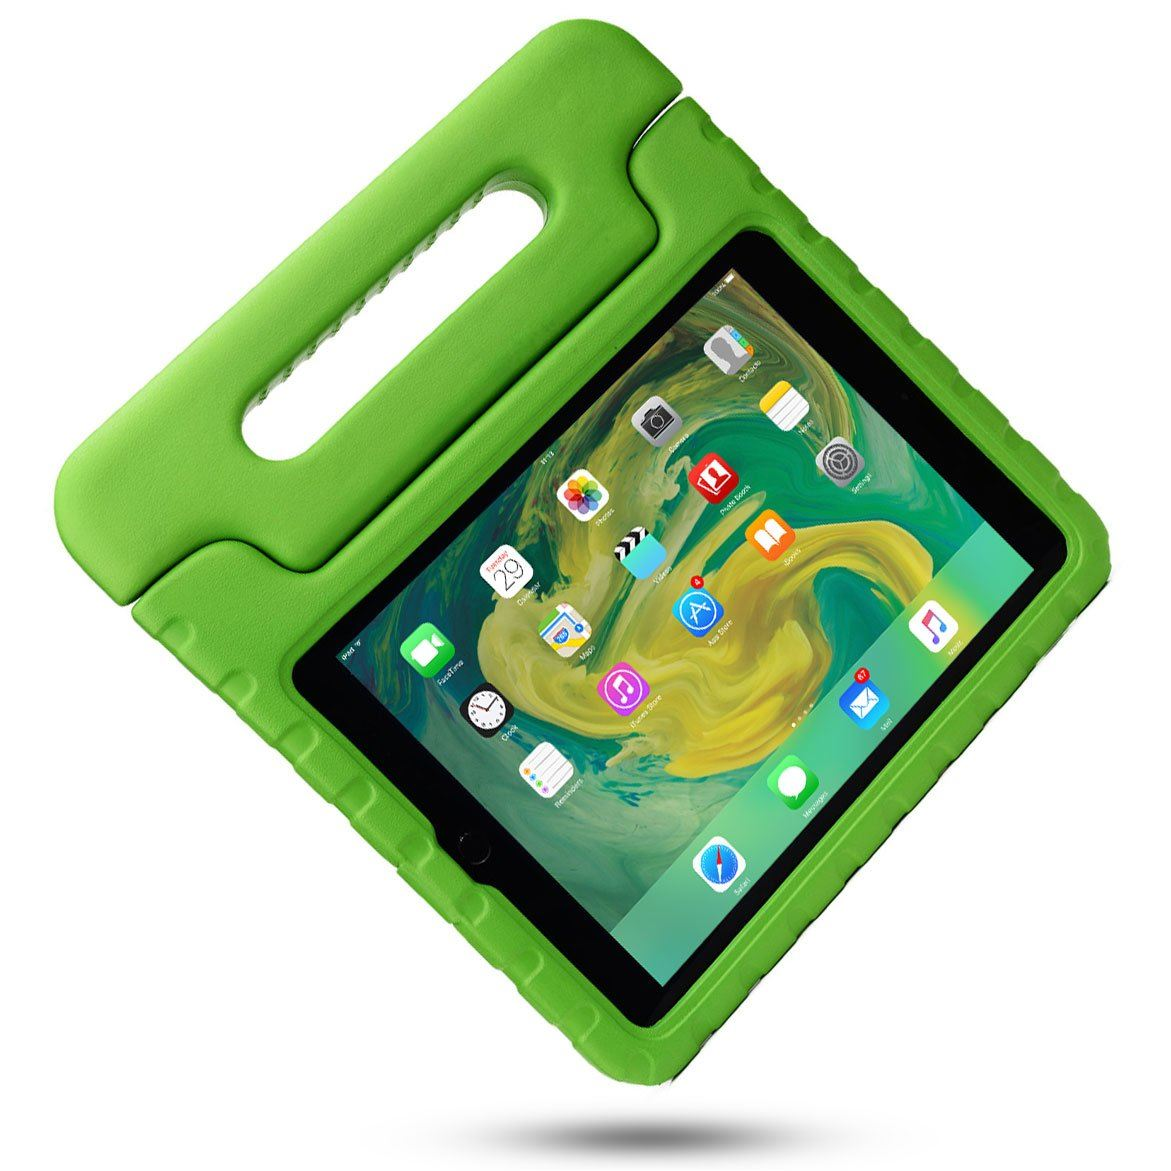 Kids-Shockproof-iPad-Case-Cover-EVA-Foam-Stand-For-Apple-iPad-Mini-1-2-3-4-Air-2 Indexbild 50